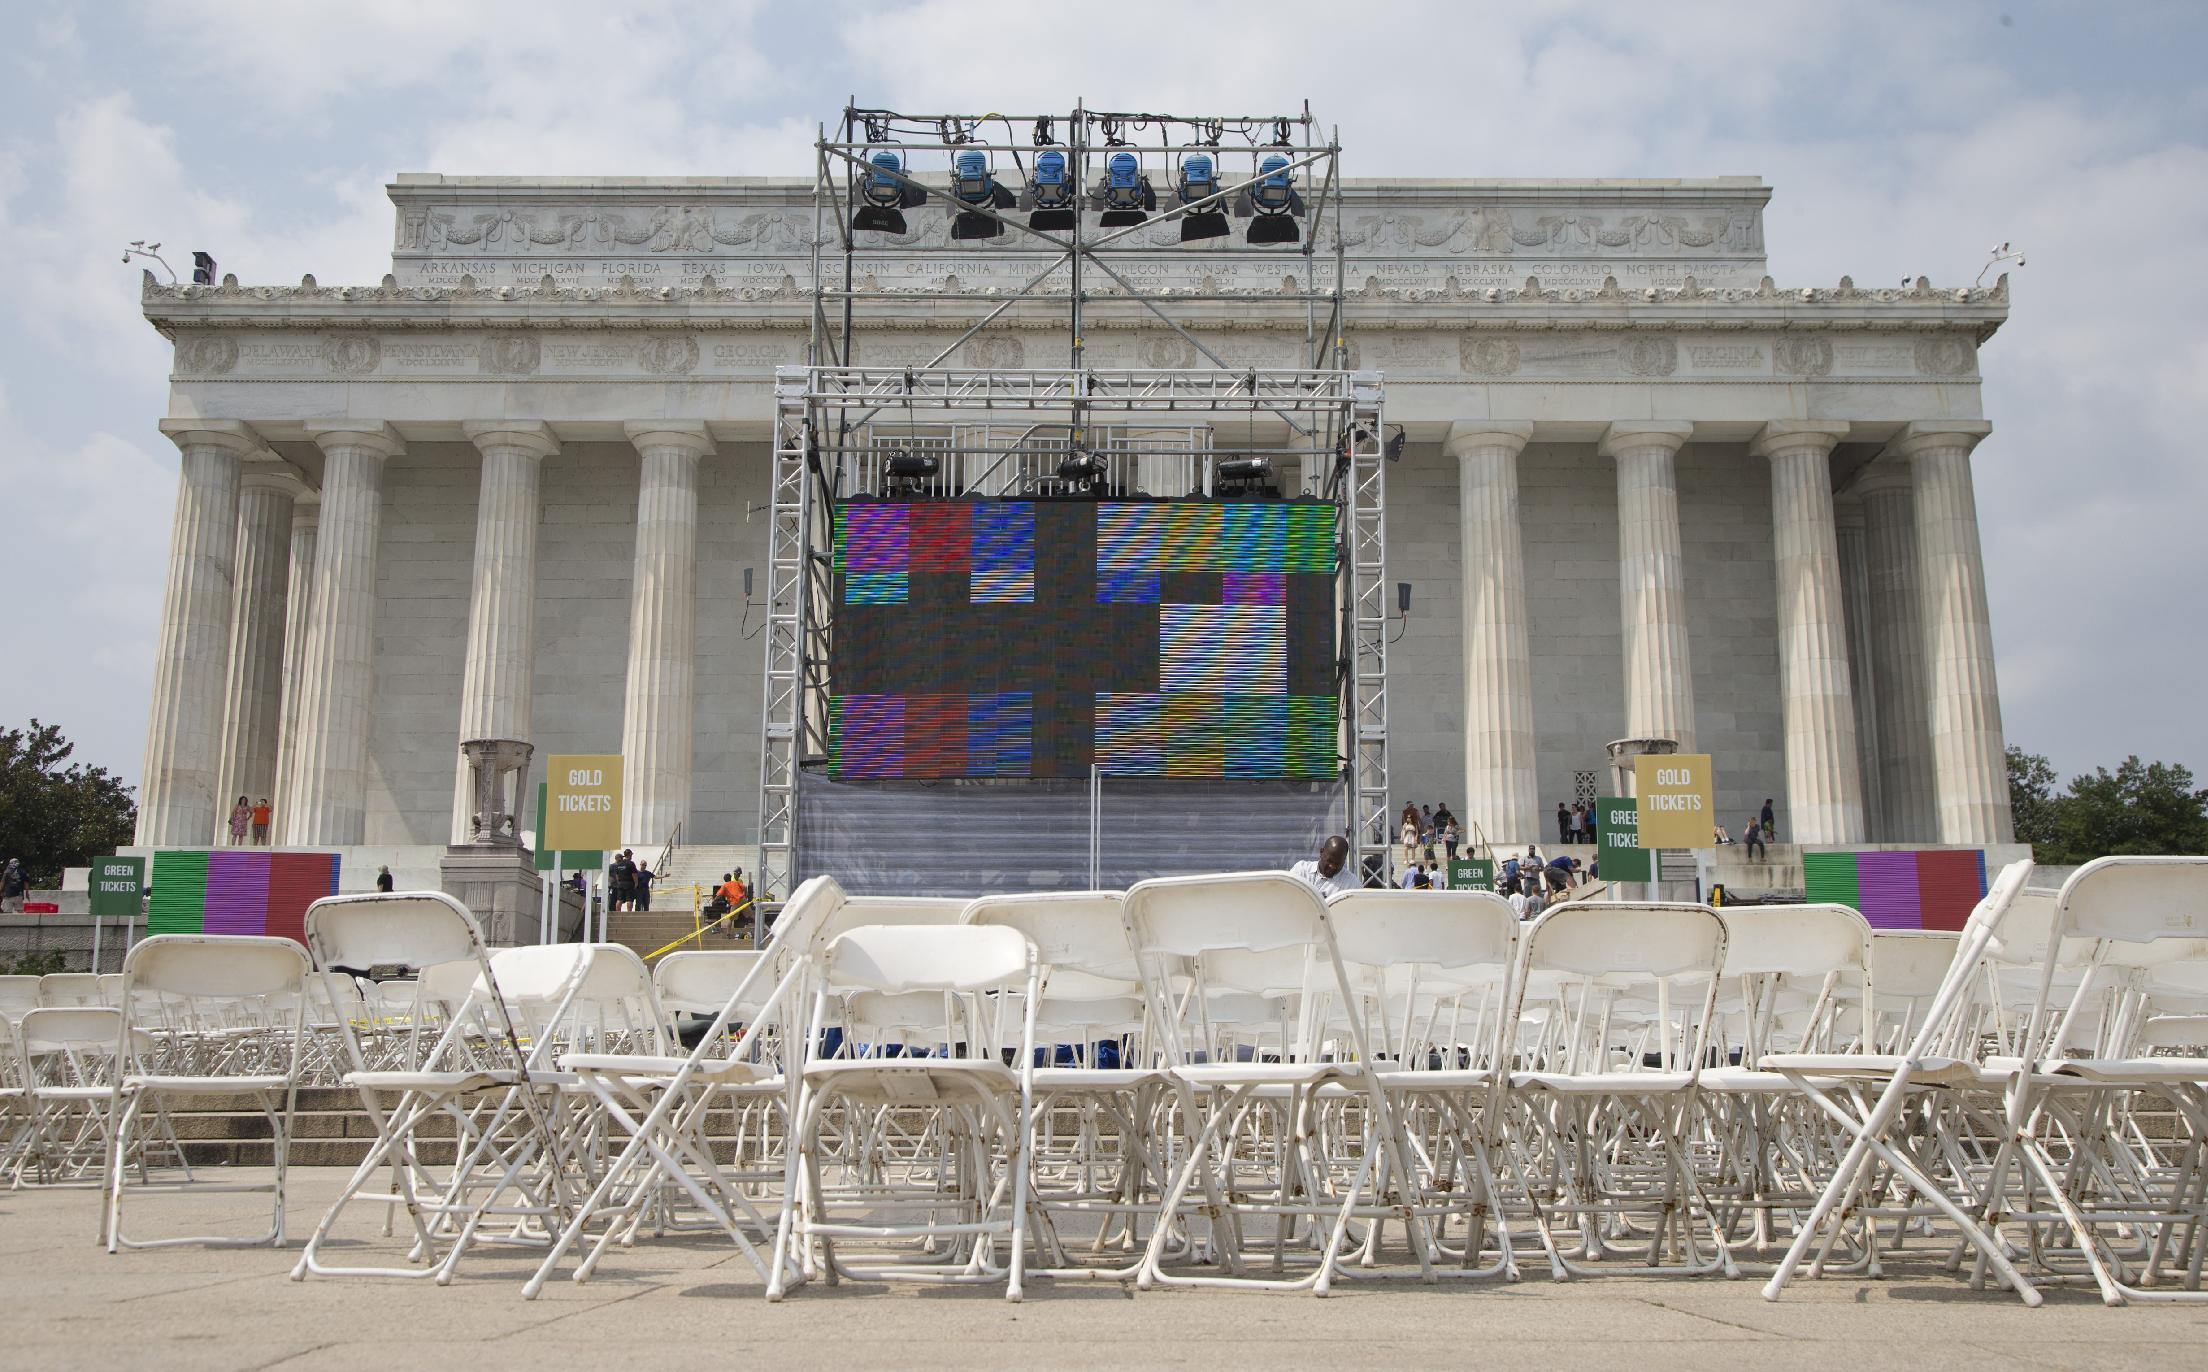 """Chairs, metal risers and video screens are set up at the Lincoln Memorial in Washington, Tuesday, Aug. 27, 2013, in preparation for the 50th anniversary of the March On Washington celebrations that will be held Wednesday, Aug, 28, 2013. Barack Obama, who is going to speak, was 2 years old and growing up in Hawaii when Martin Luther King Jr. delivered his """"I Have a Dream"""" speech from the steps of the Lincoln Memorial. Fifty years later, the nation's first black president will stand as the most high-profile example of the racial progress King espoused, delivering remarks at a nationwide commemoration of the 1963 demonstration for jobs, economic justice and racial equality. (AP Photo/Carolyn Kaster)"""